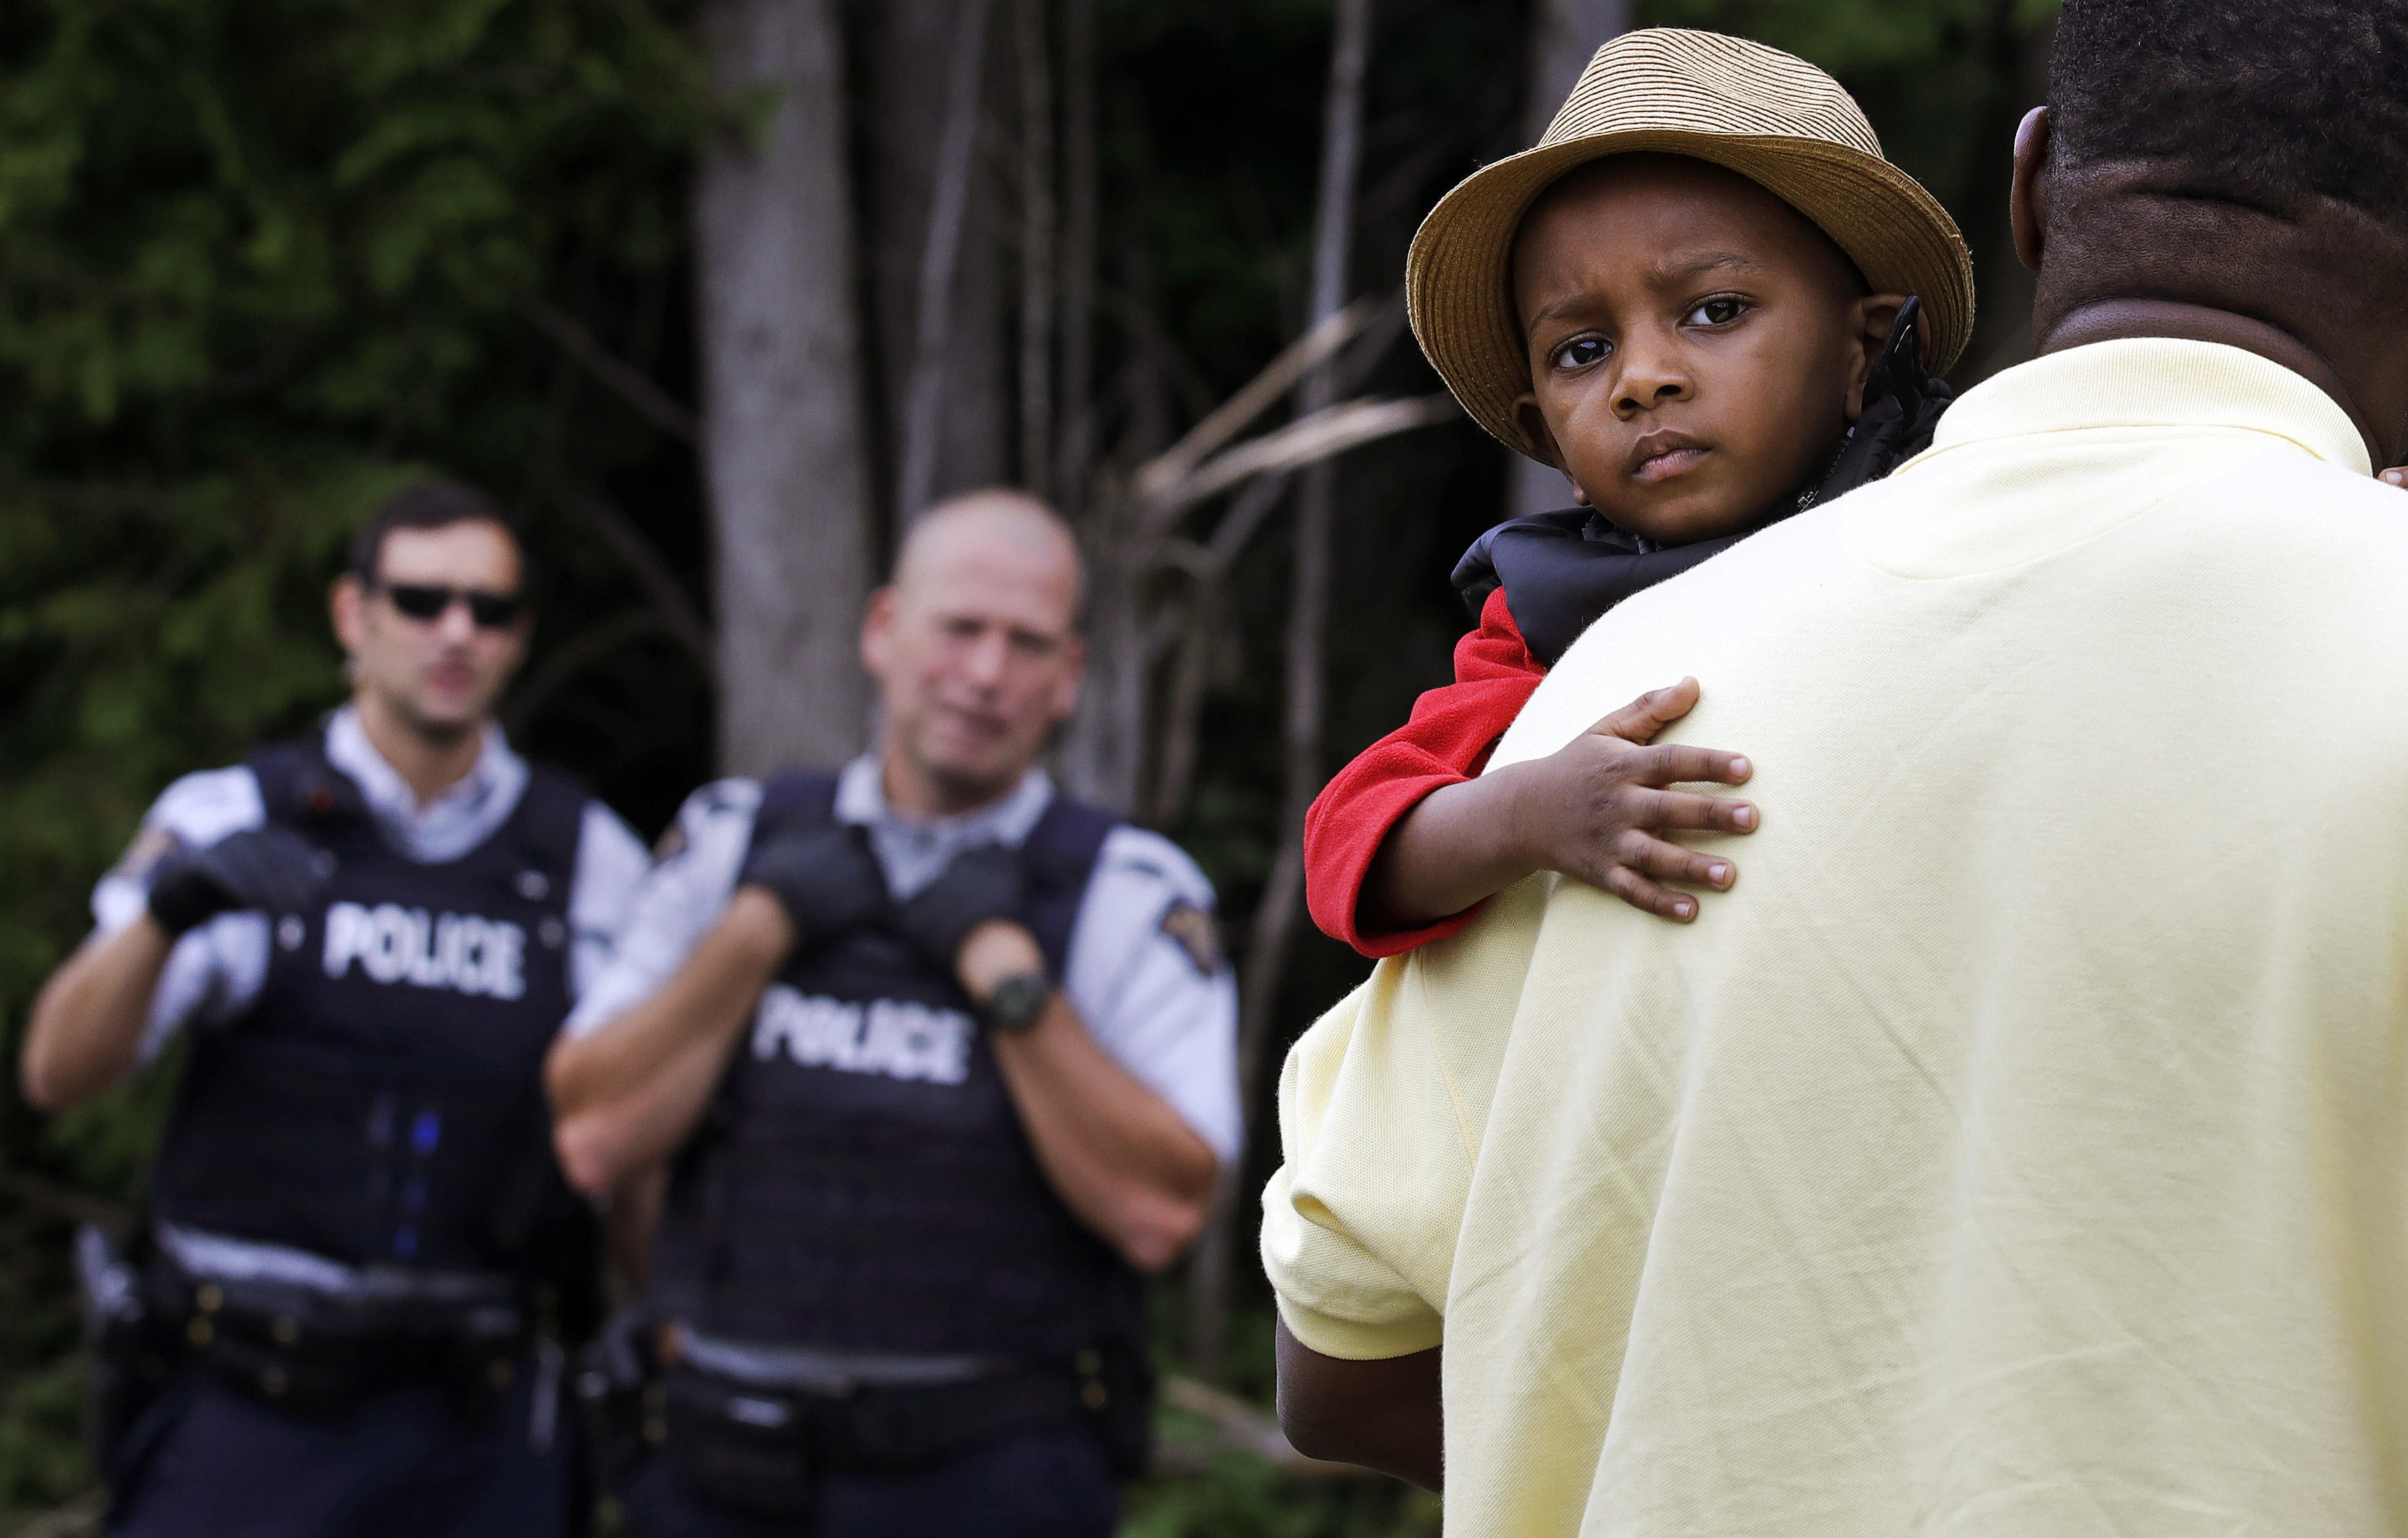 Country road to Canada is route to hope for many migrants